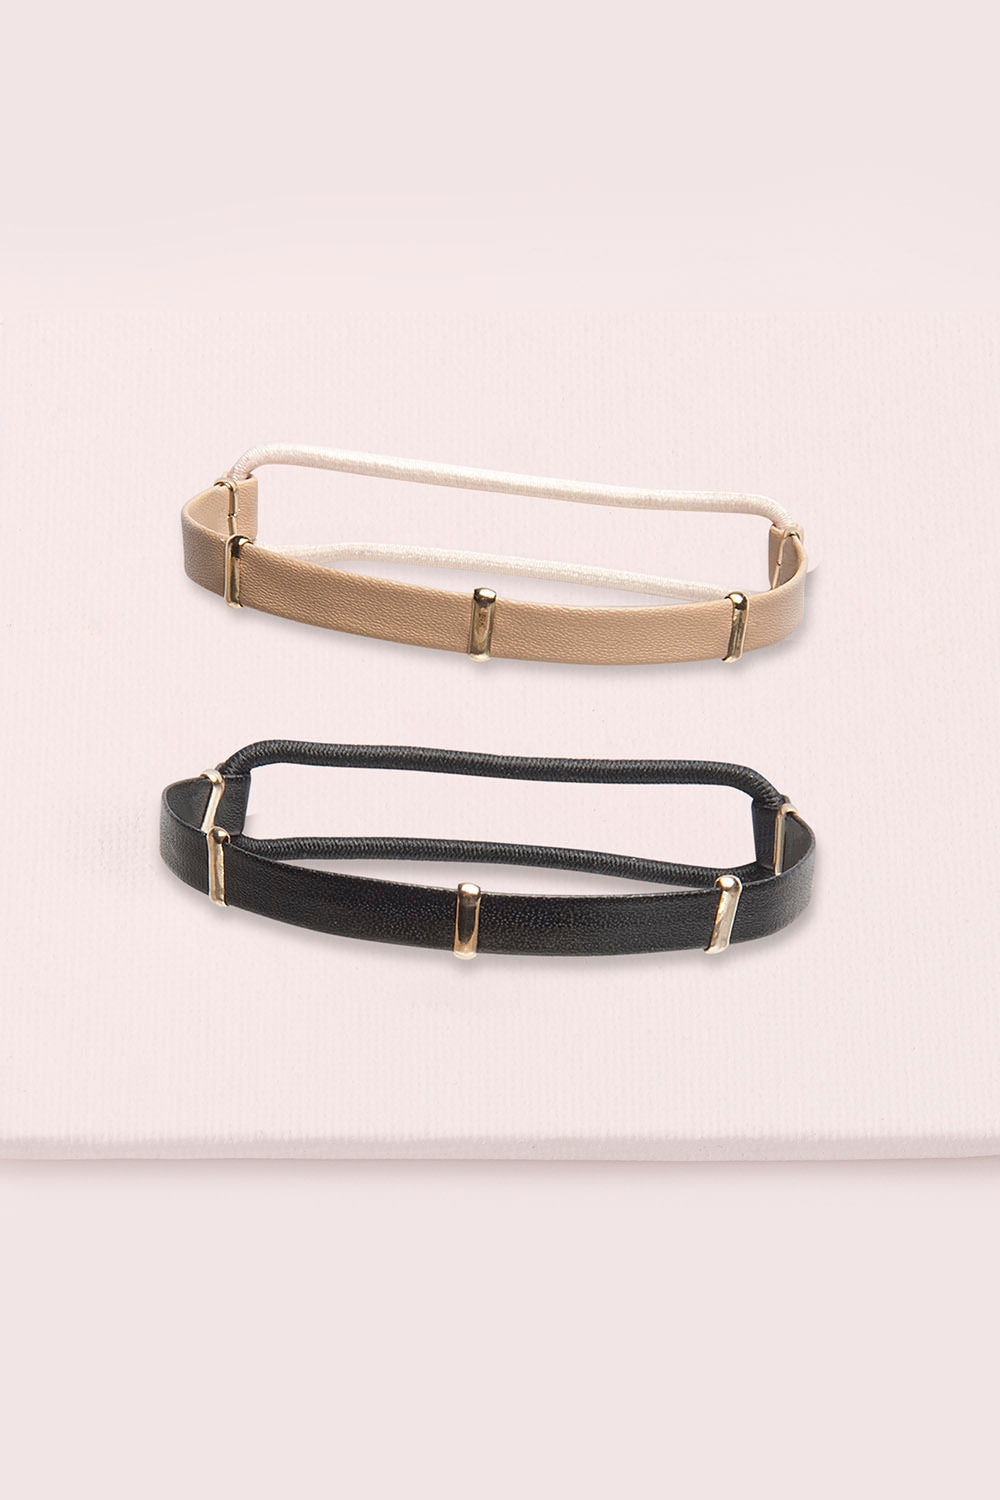 The Hair Edit Wristlet Duo Gold Accented Hair Ties